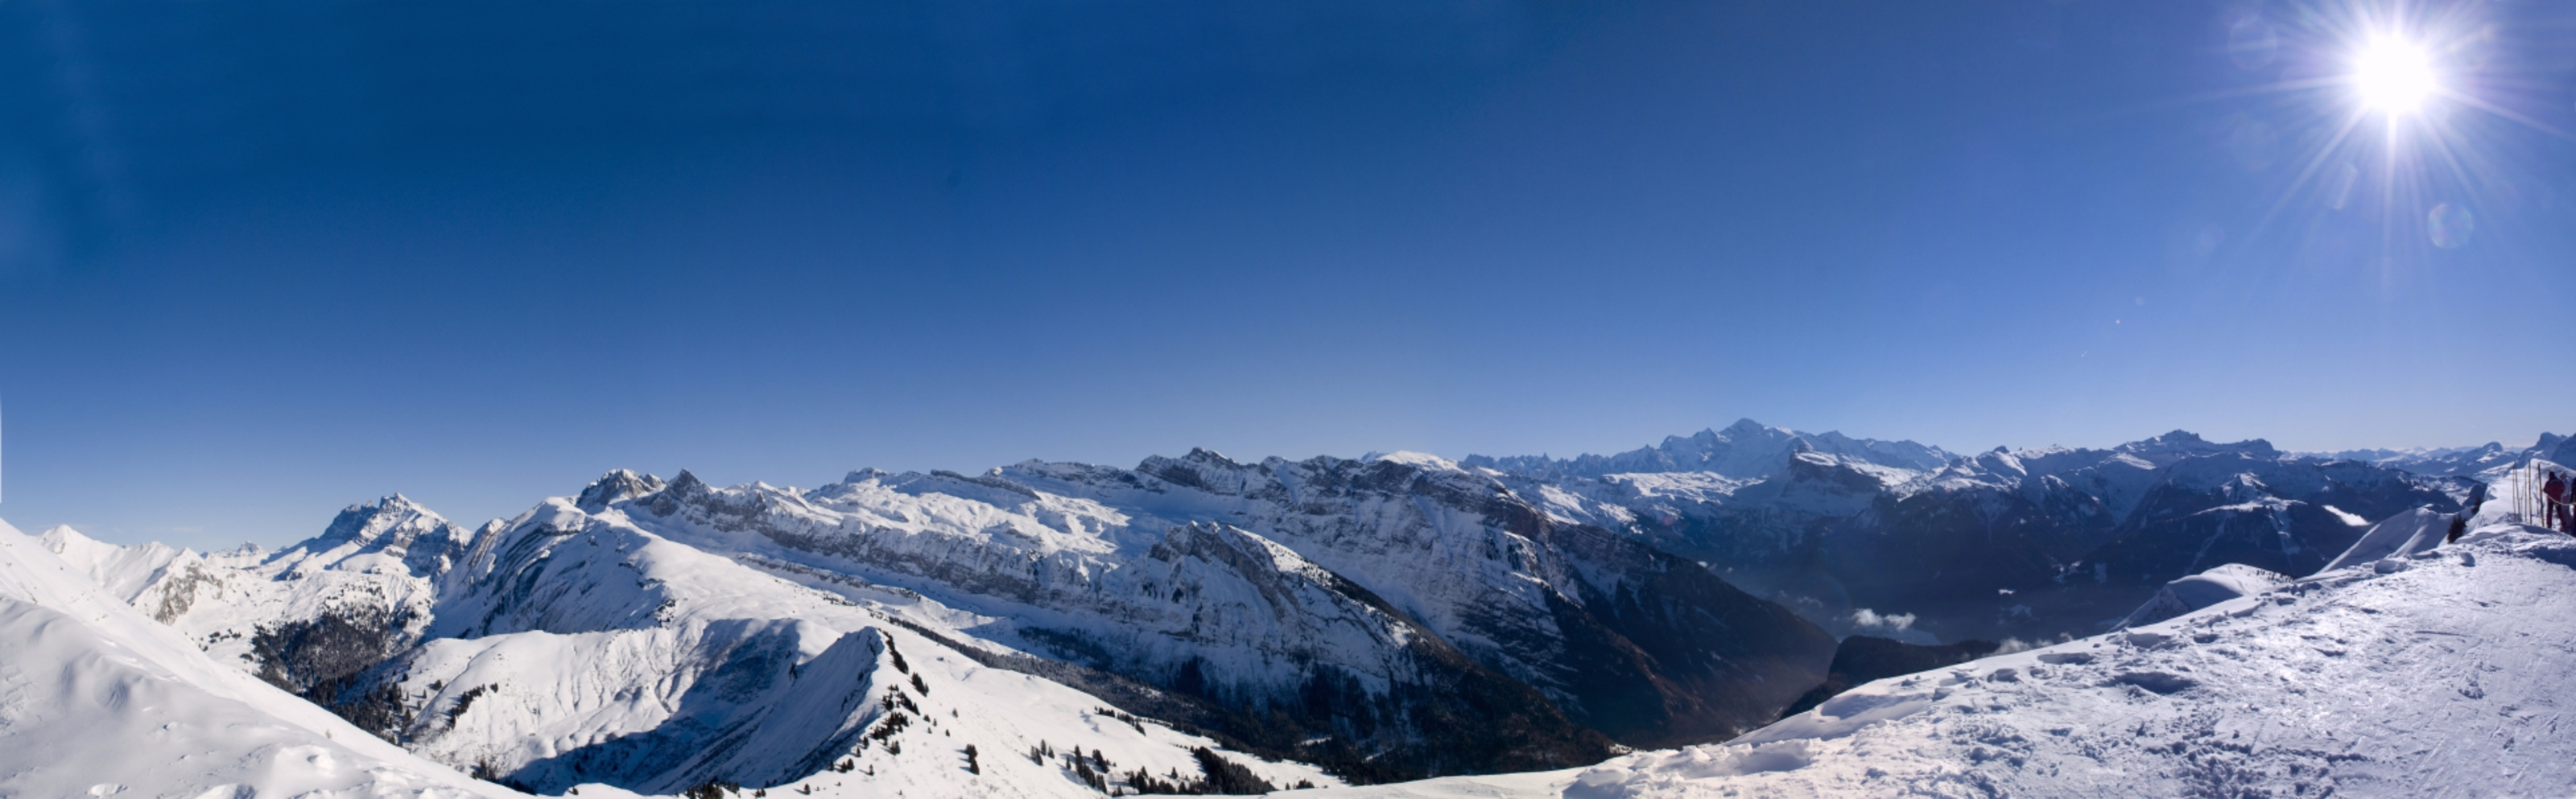 The snowy slopes of the French Alps beg to be explored on skis.